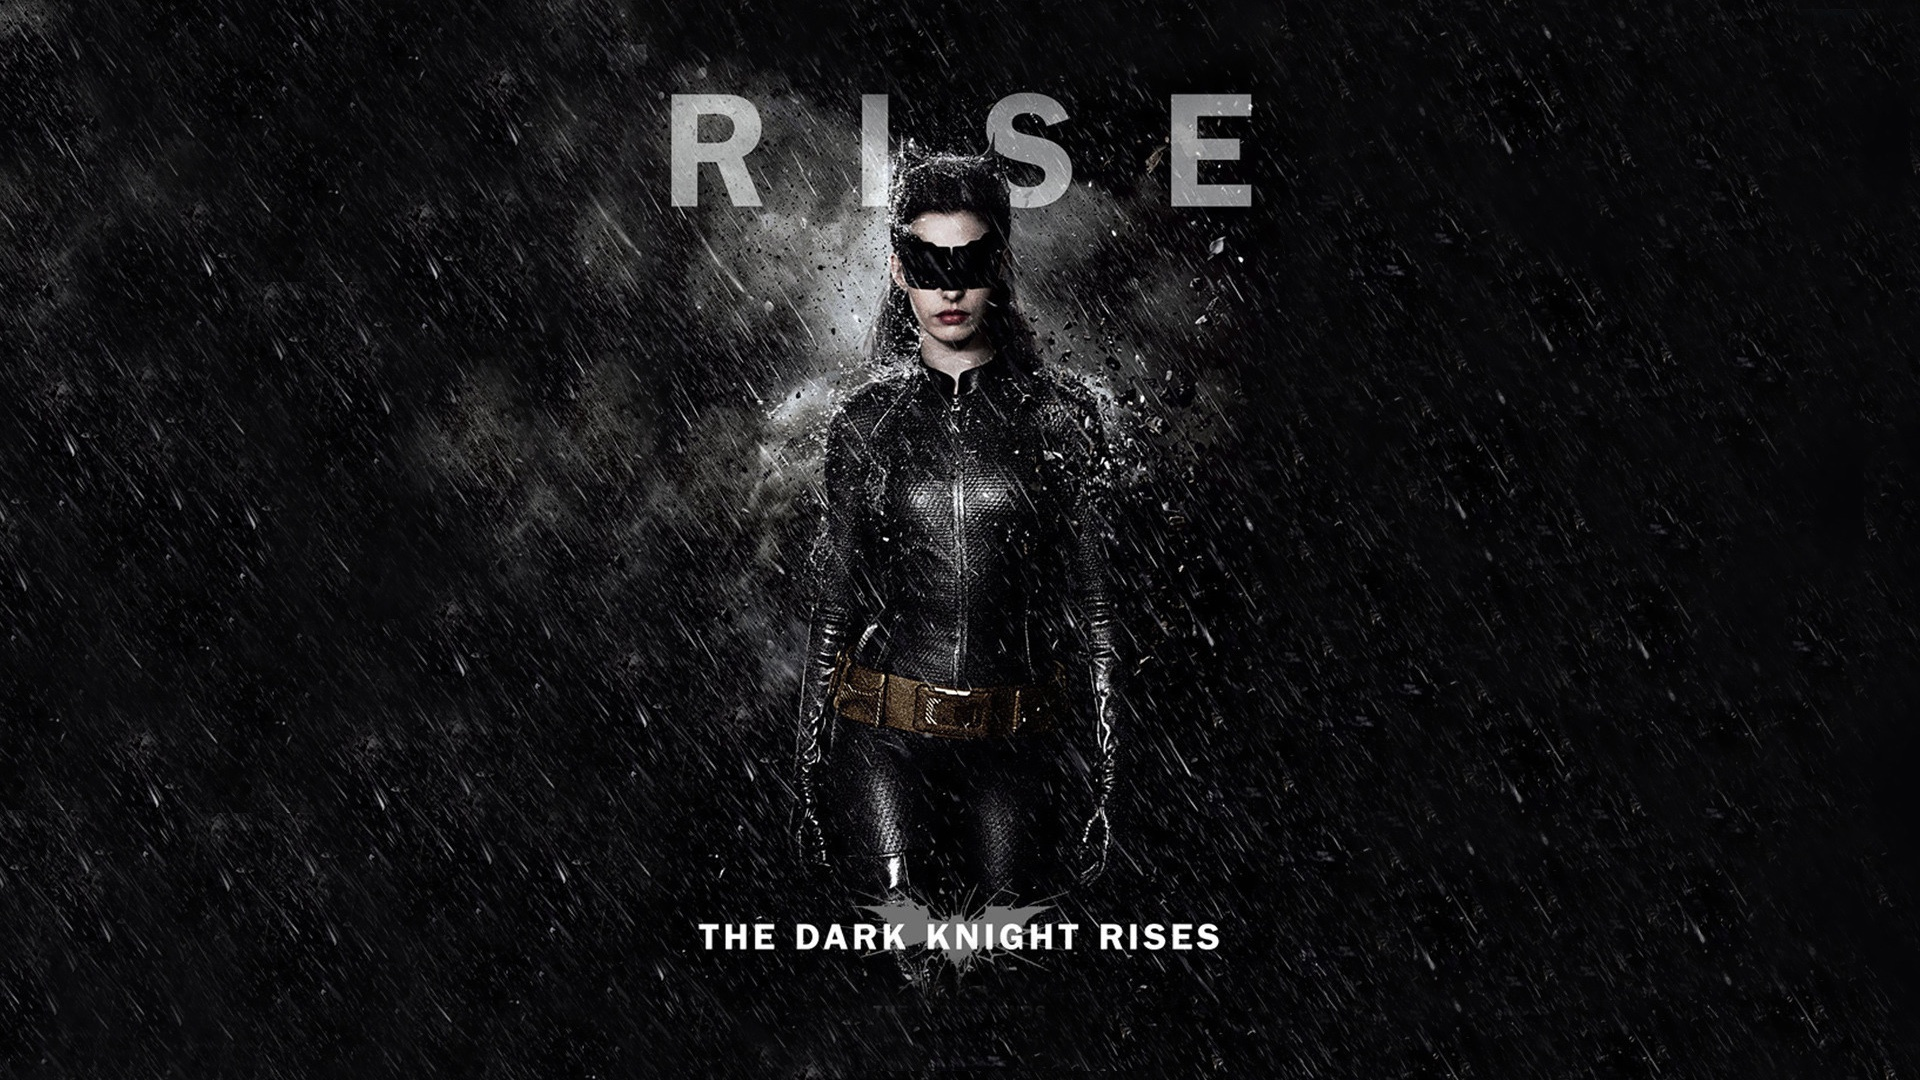 Catwoman The Dark Knight Rises Wallpapers HD Wallpapers 1920x1080